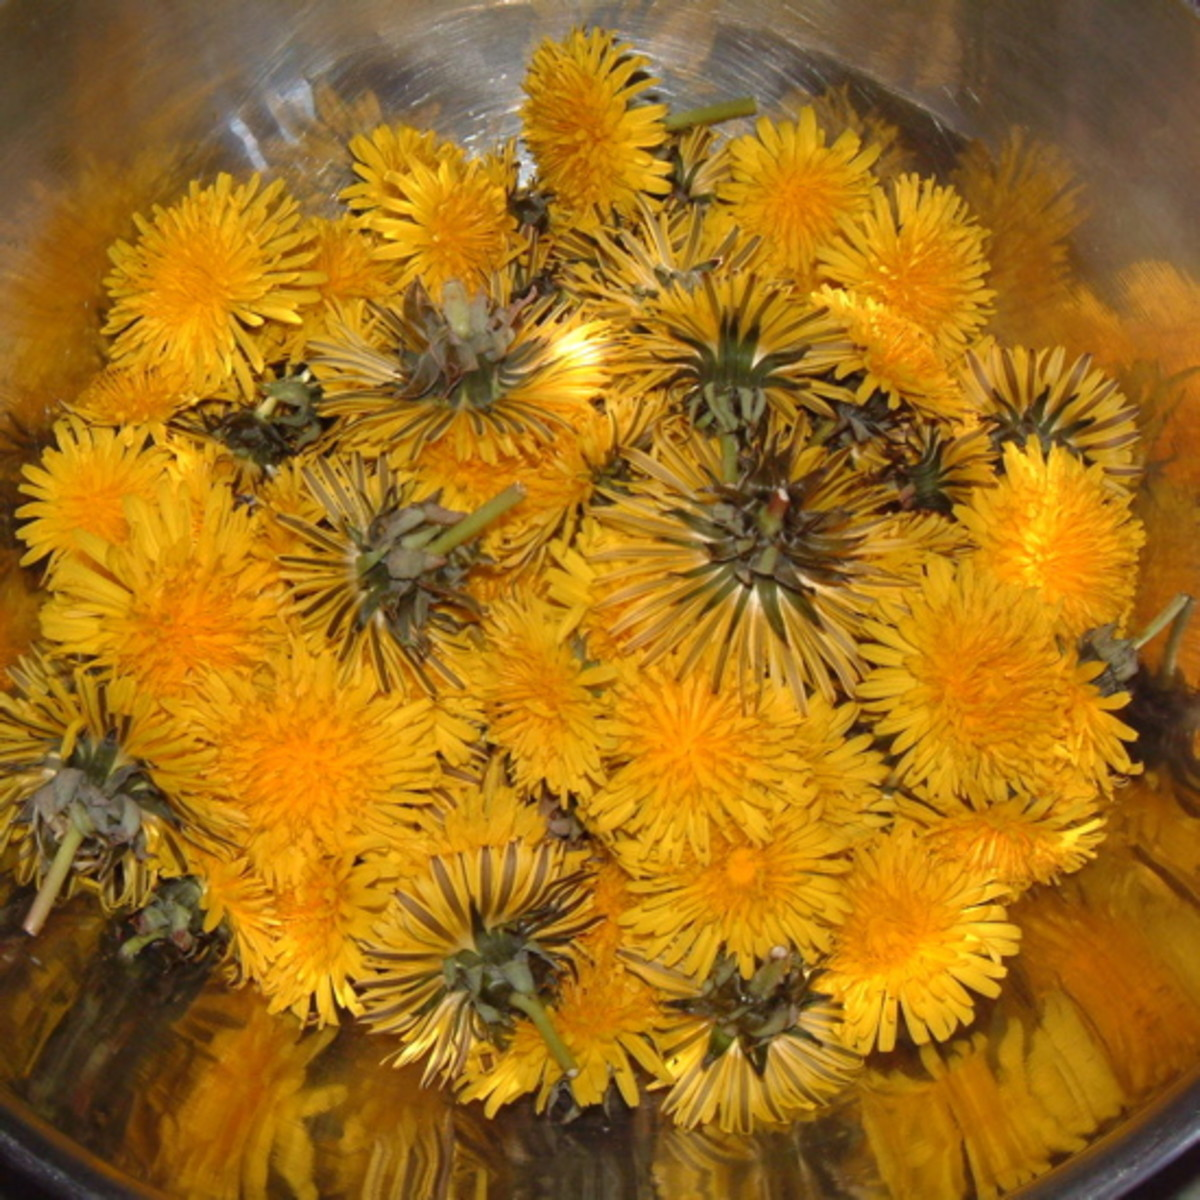 Freshly-picked dandelions